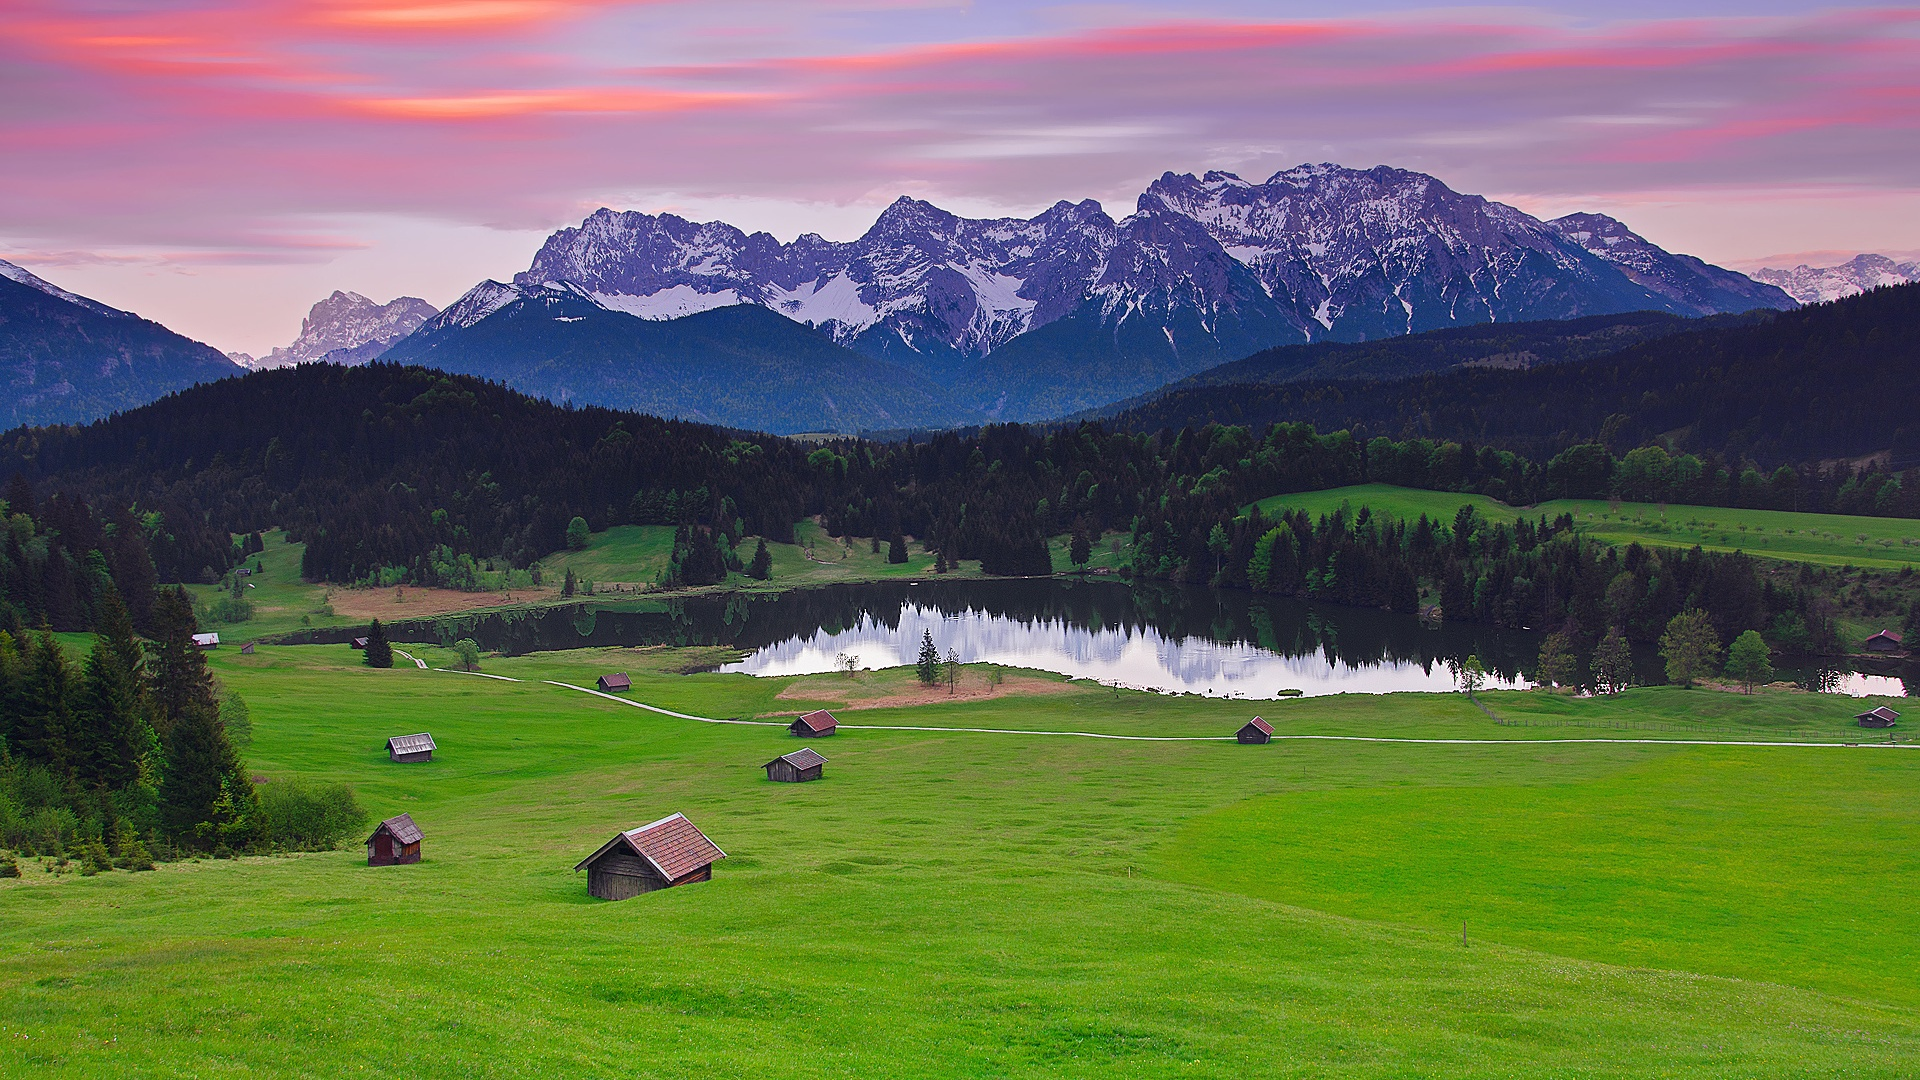 High Resolution Wallpapers Free Download: Bavaria Wallpapers High Quality